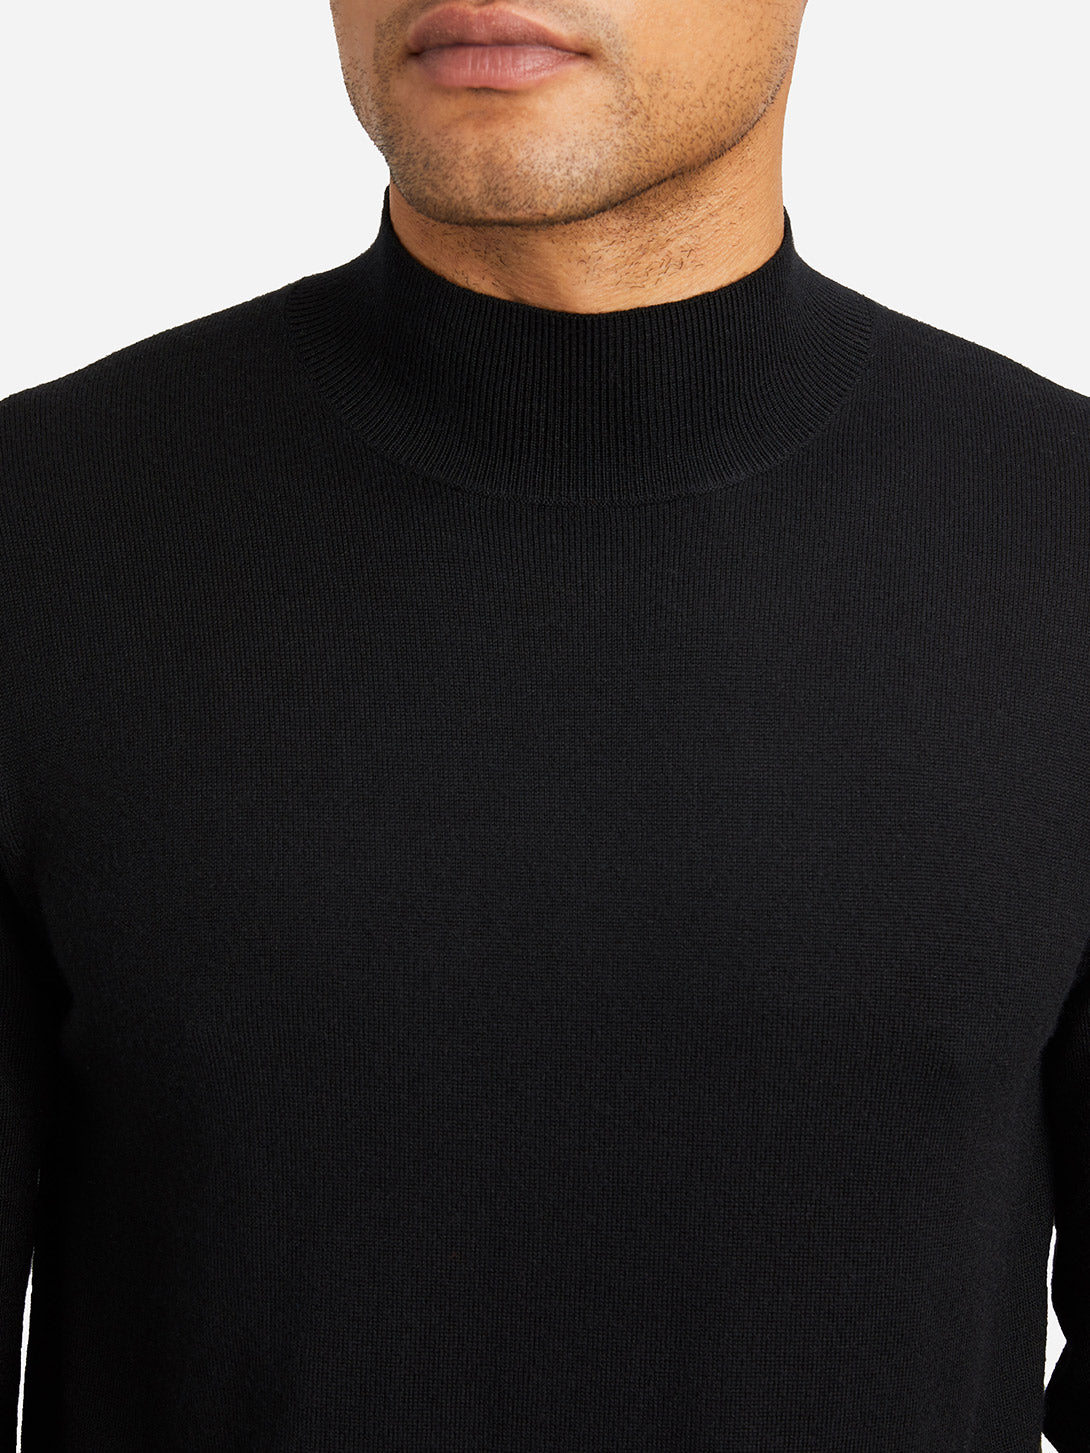 JET BLACK sweaters for men mason mock neck sweater ons clothing